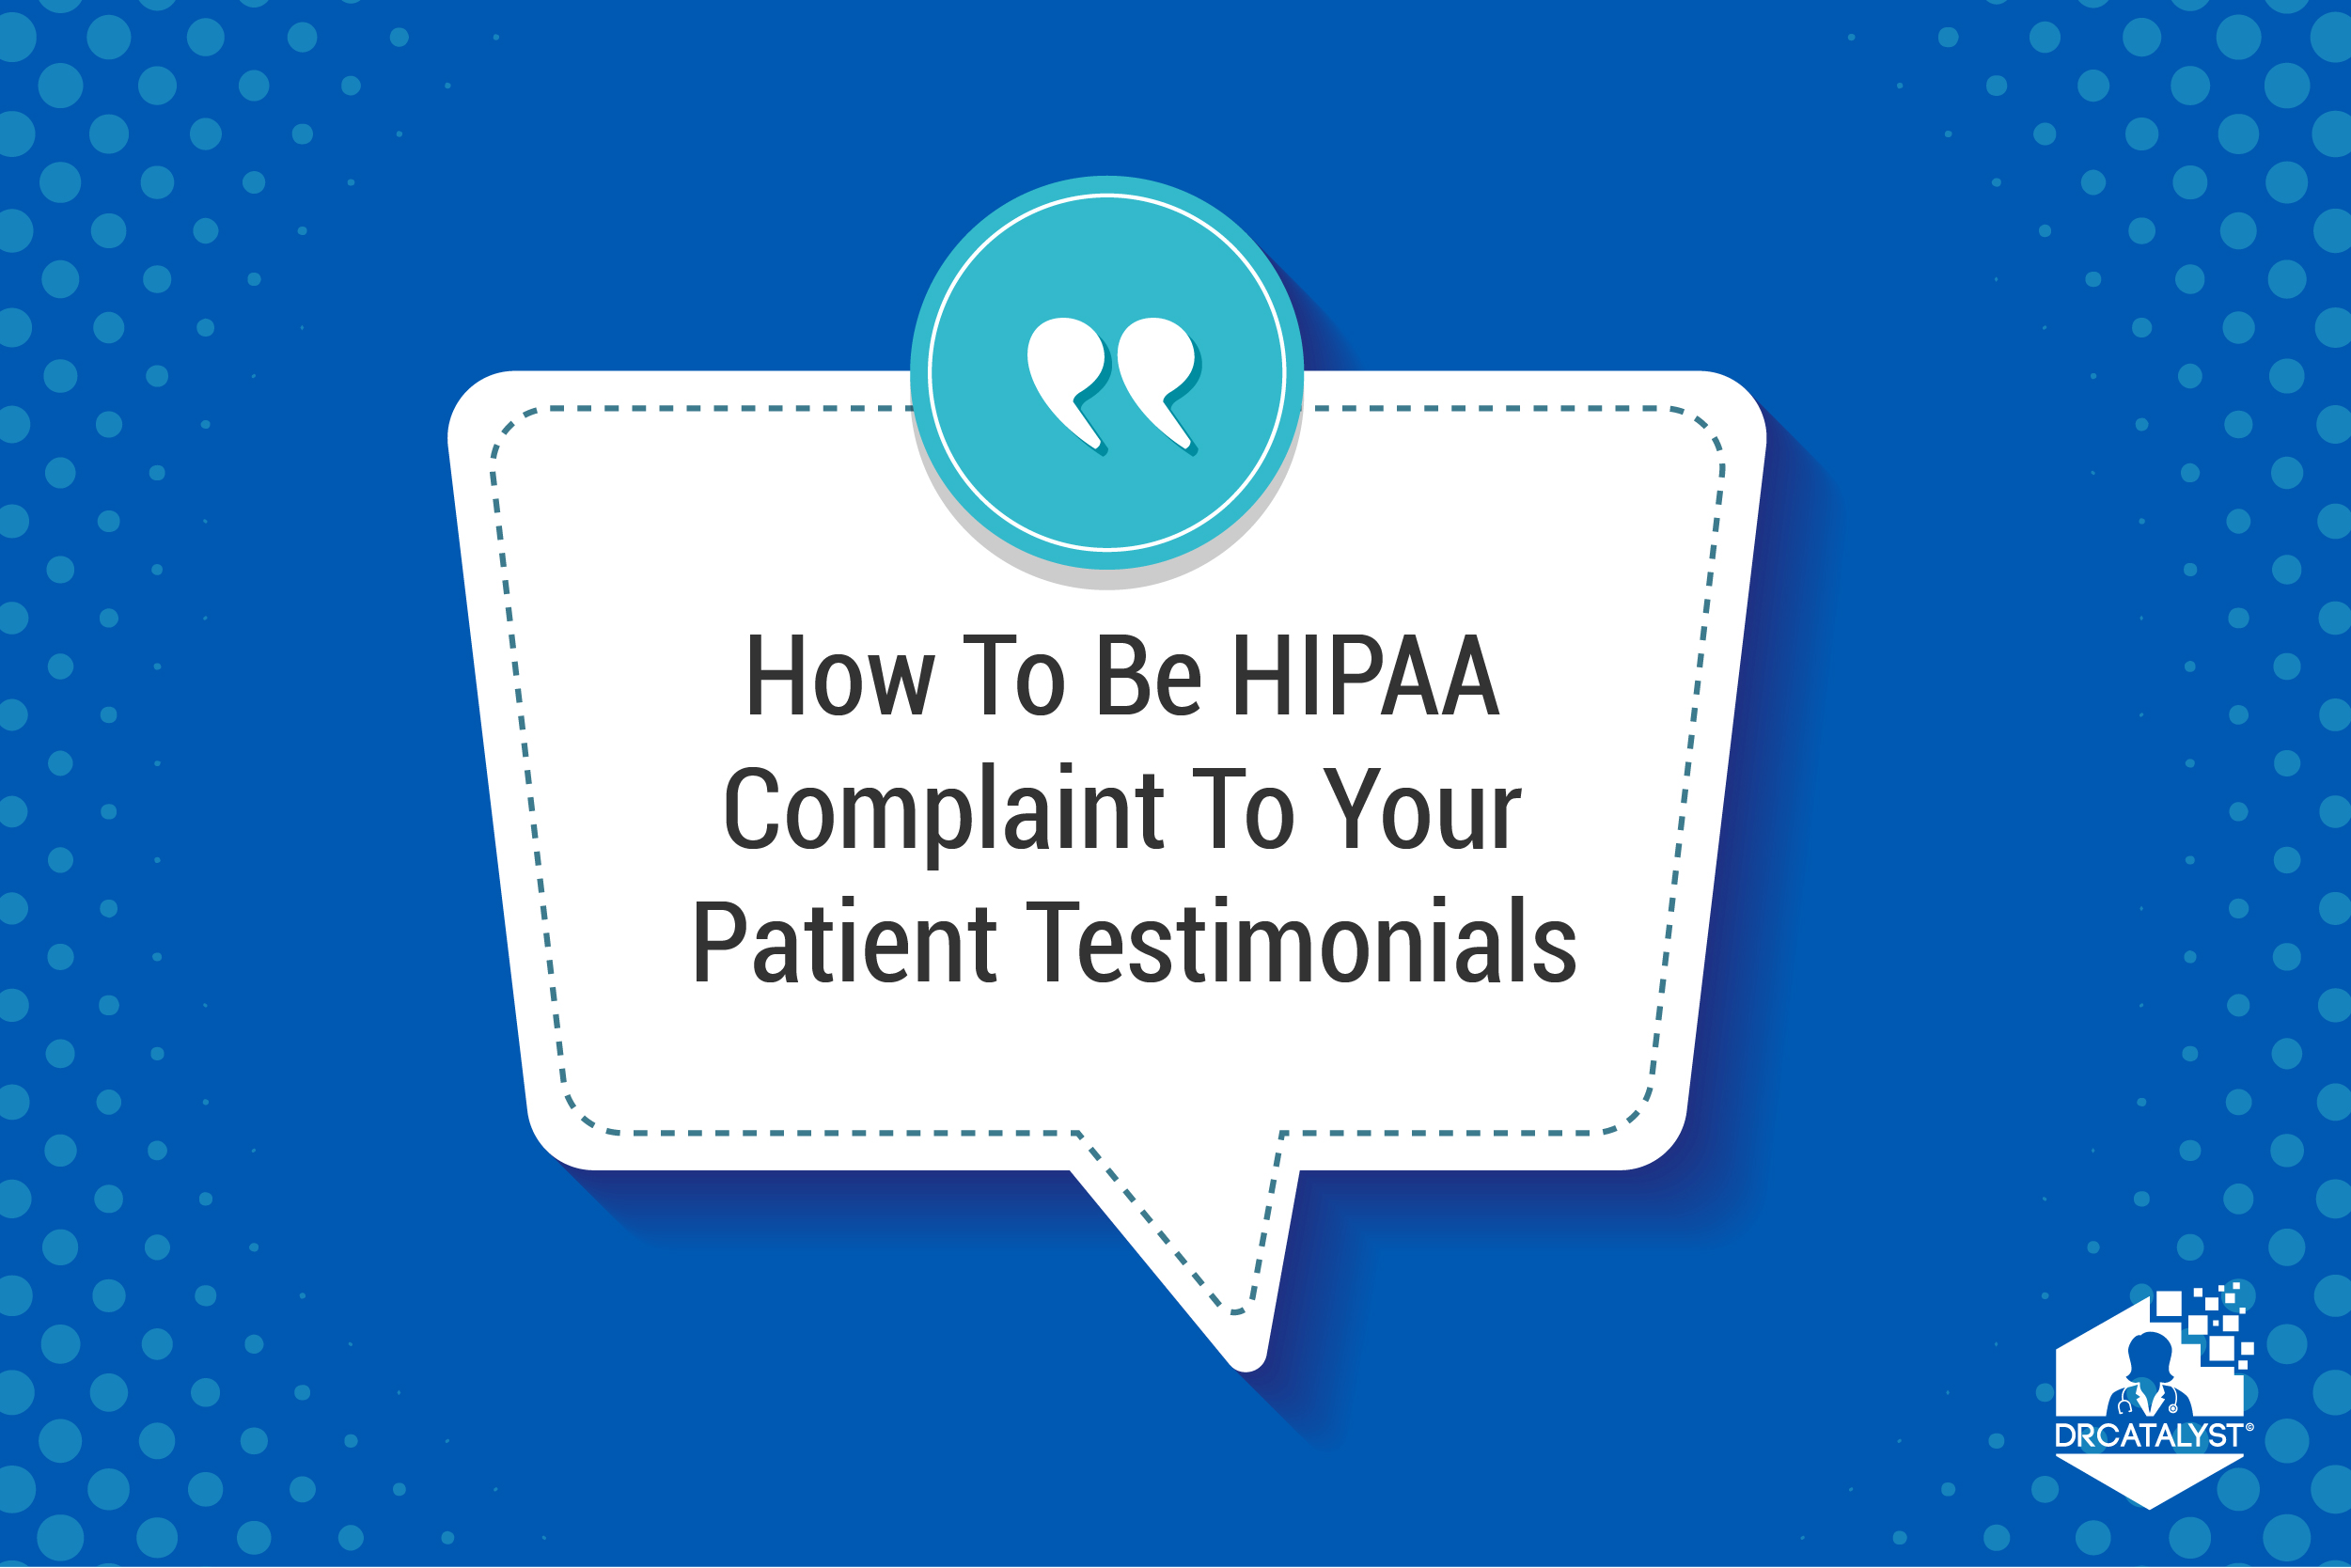 How To Be HIPAA Compliant With Your Patient Testimonials